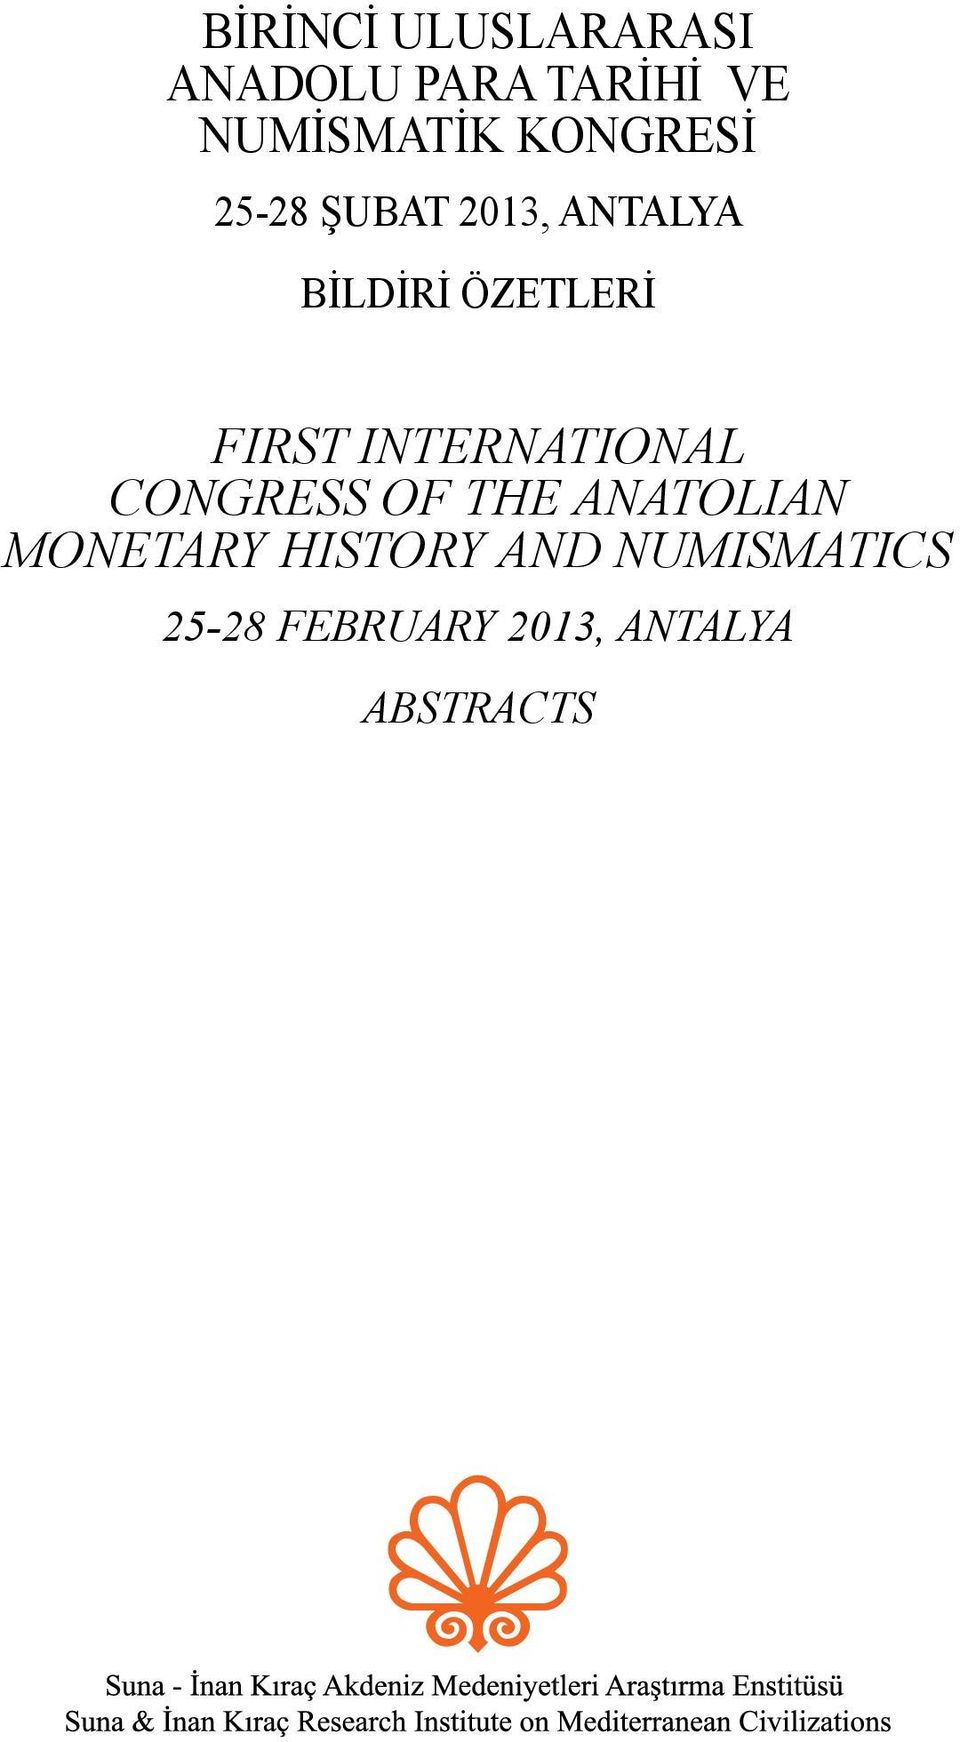 FIRST INTERNATIONAL CONGRESS OF THE ANATOLIAN MONETARY